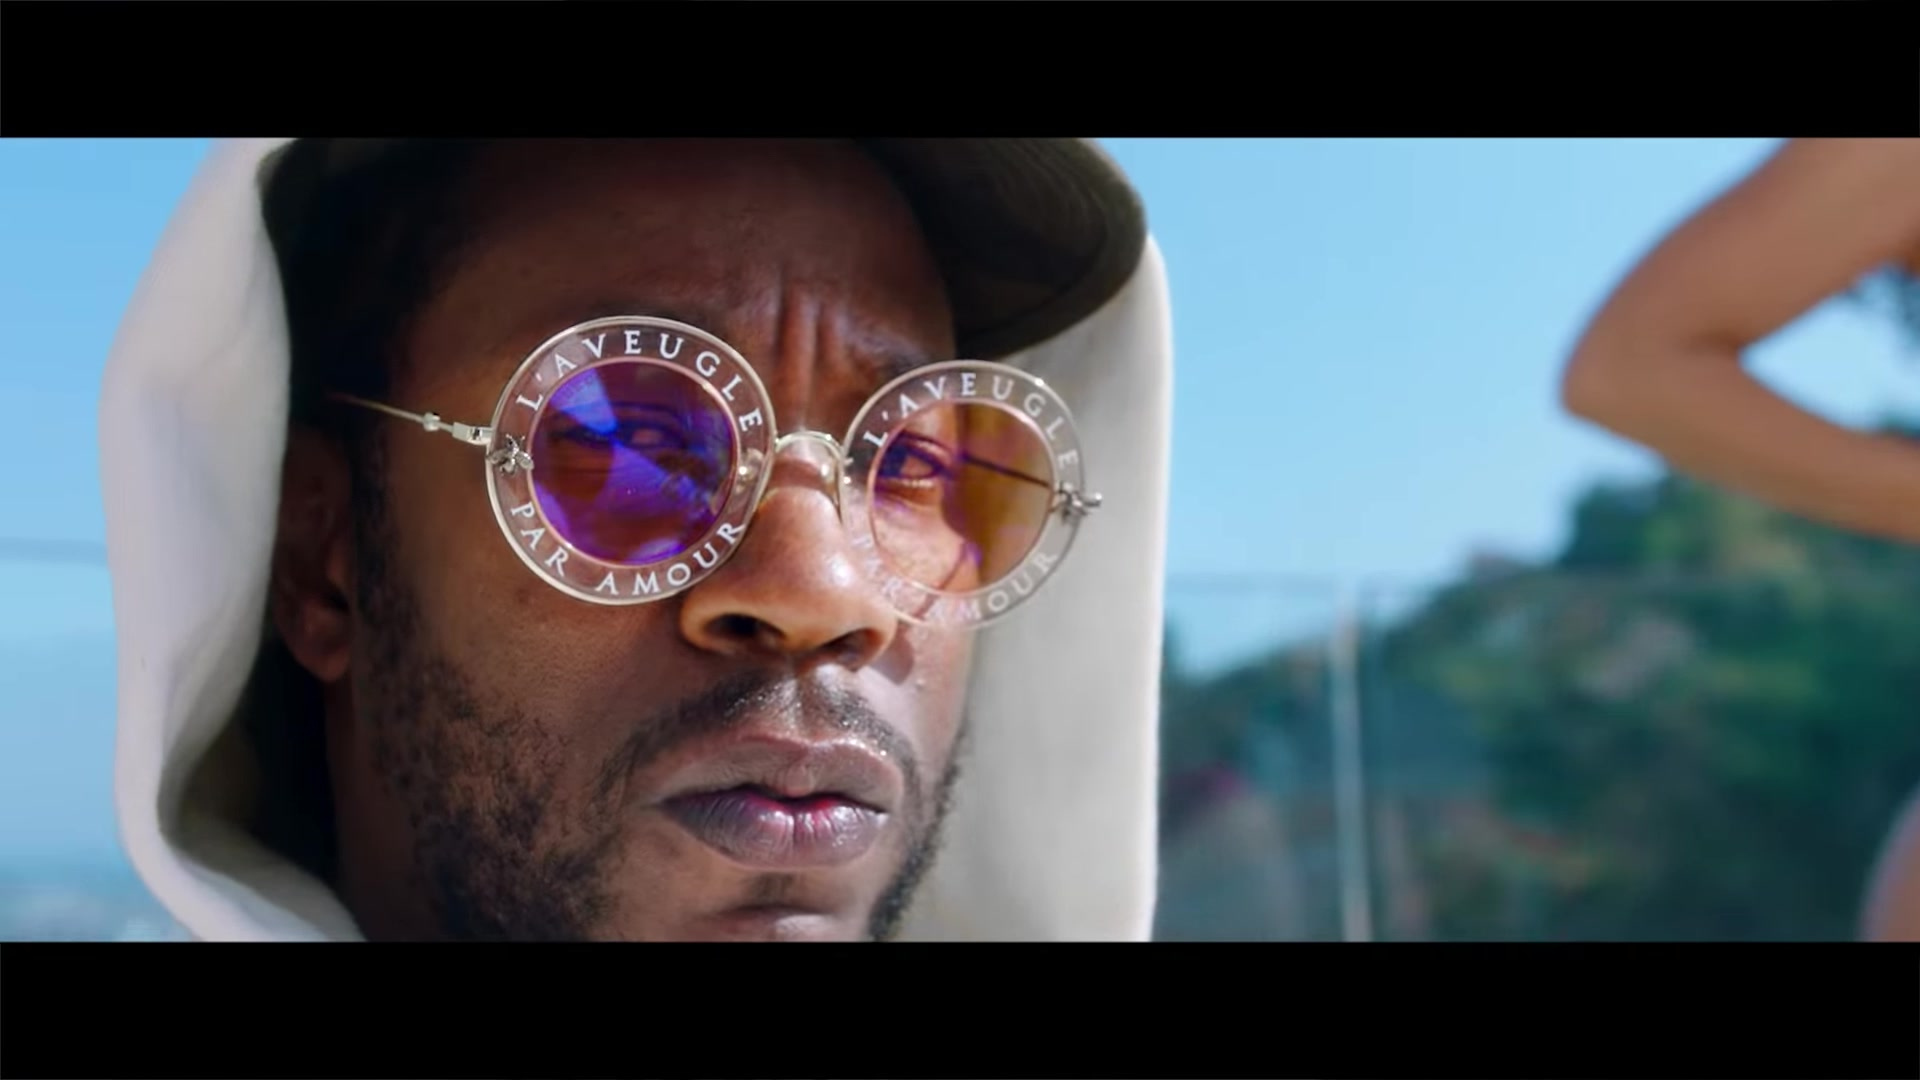 Seen In The Music Video Gucci Eyewear L Aveugle Par Amour